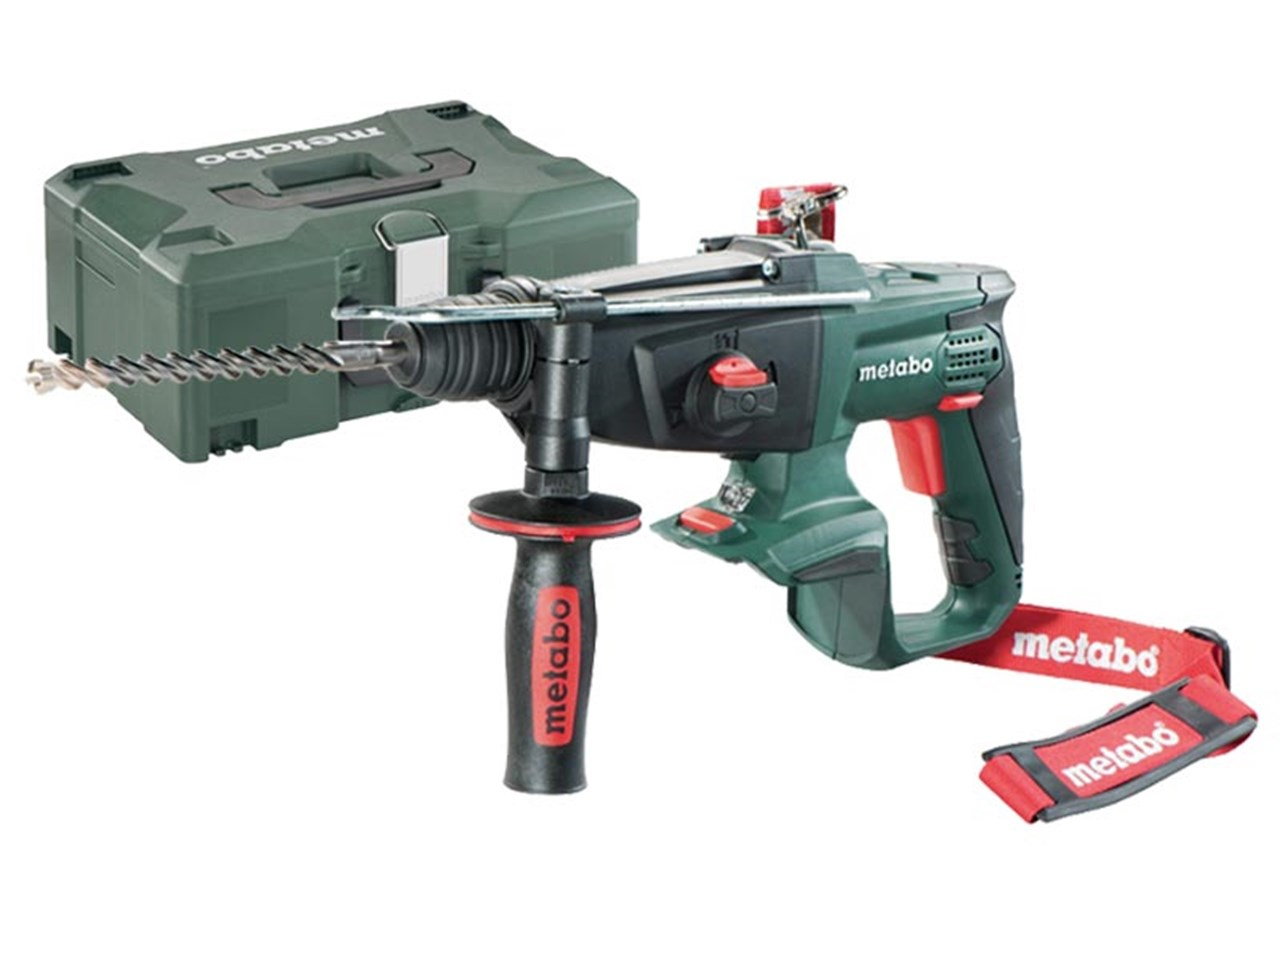 metabo kha18ltx 18v sds hammer drilll bare unit and metaloc. Black Bedroom Furniture Sets. Home Design Ideas